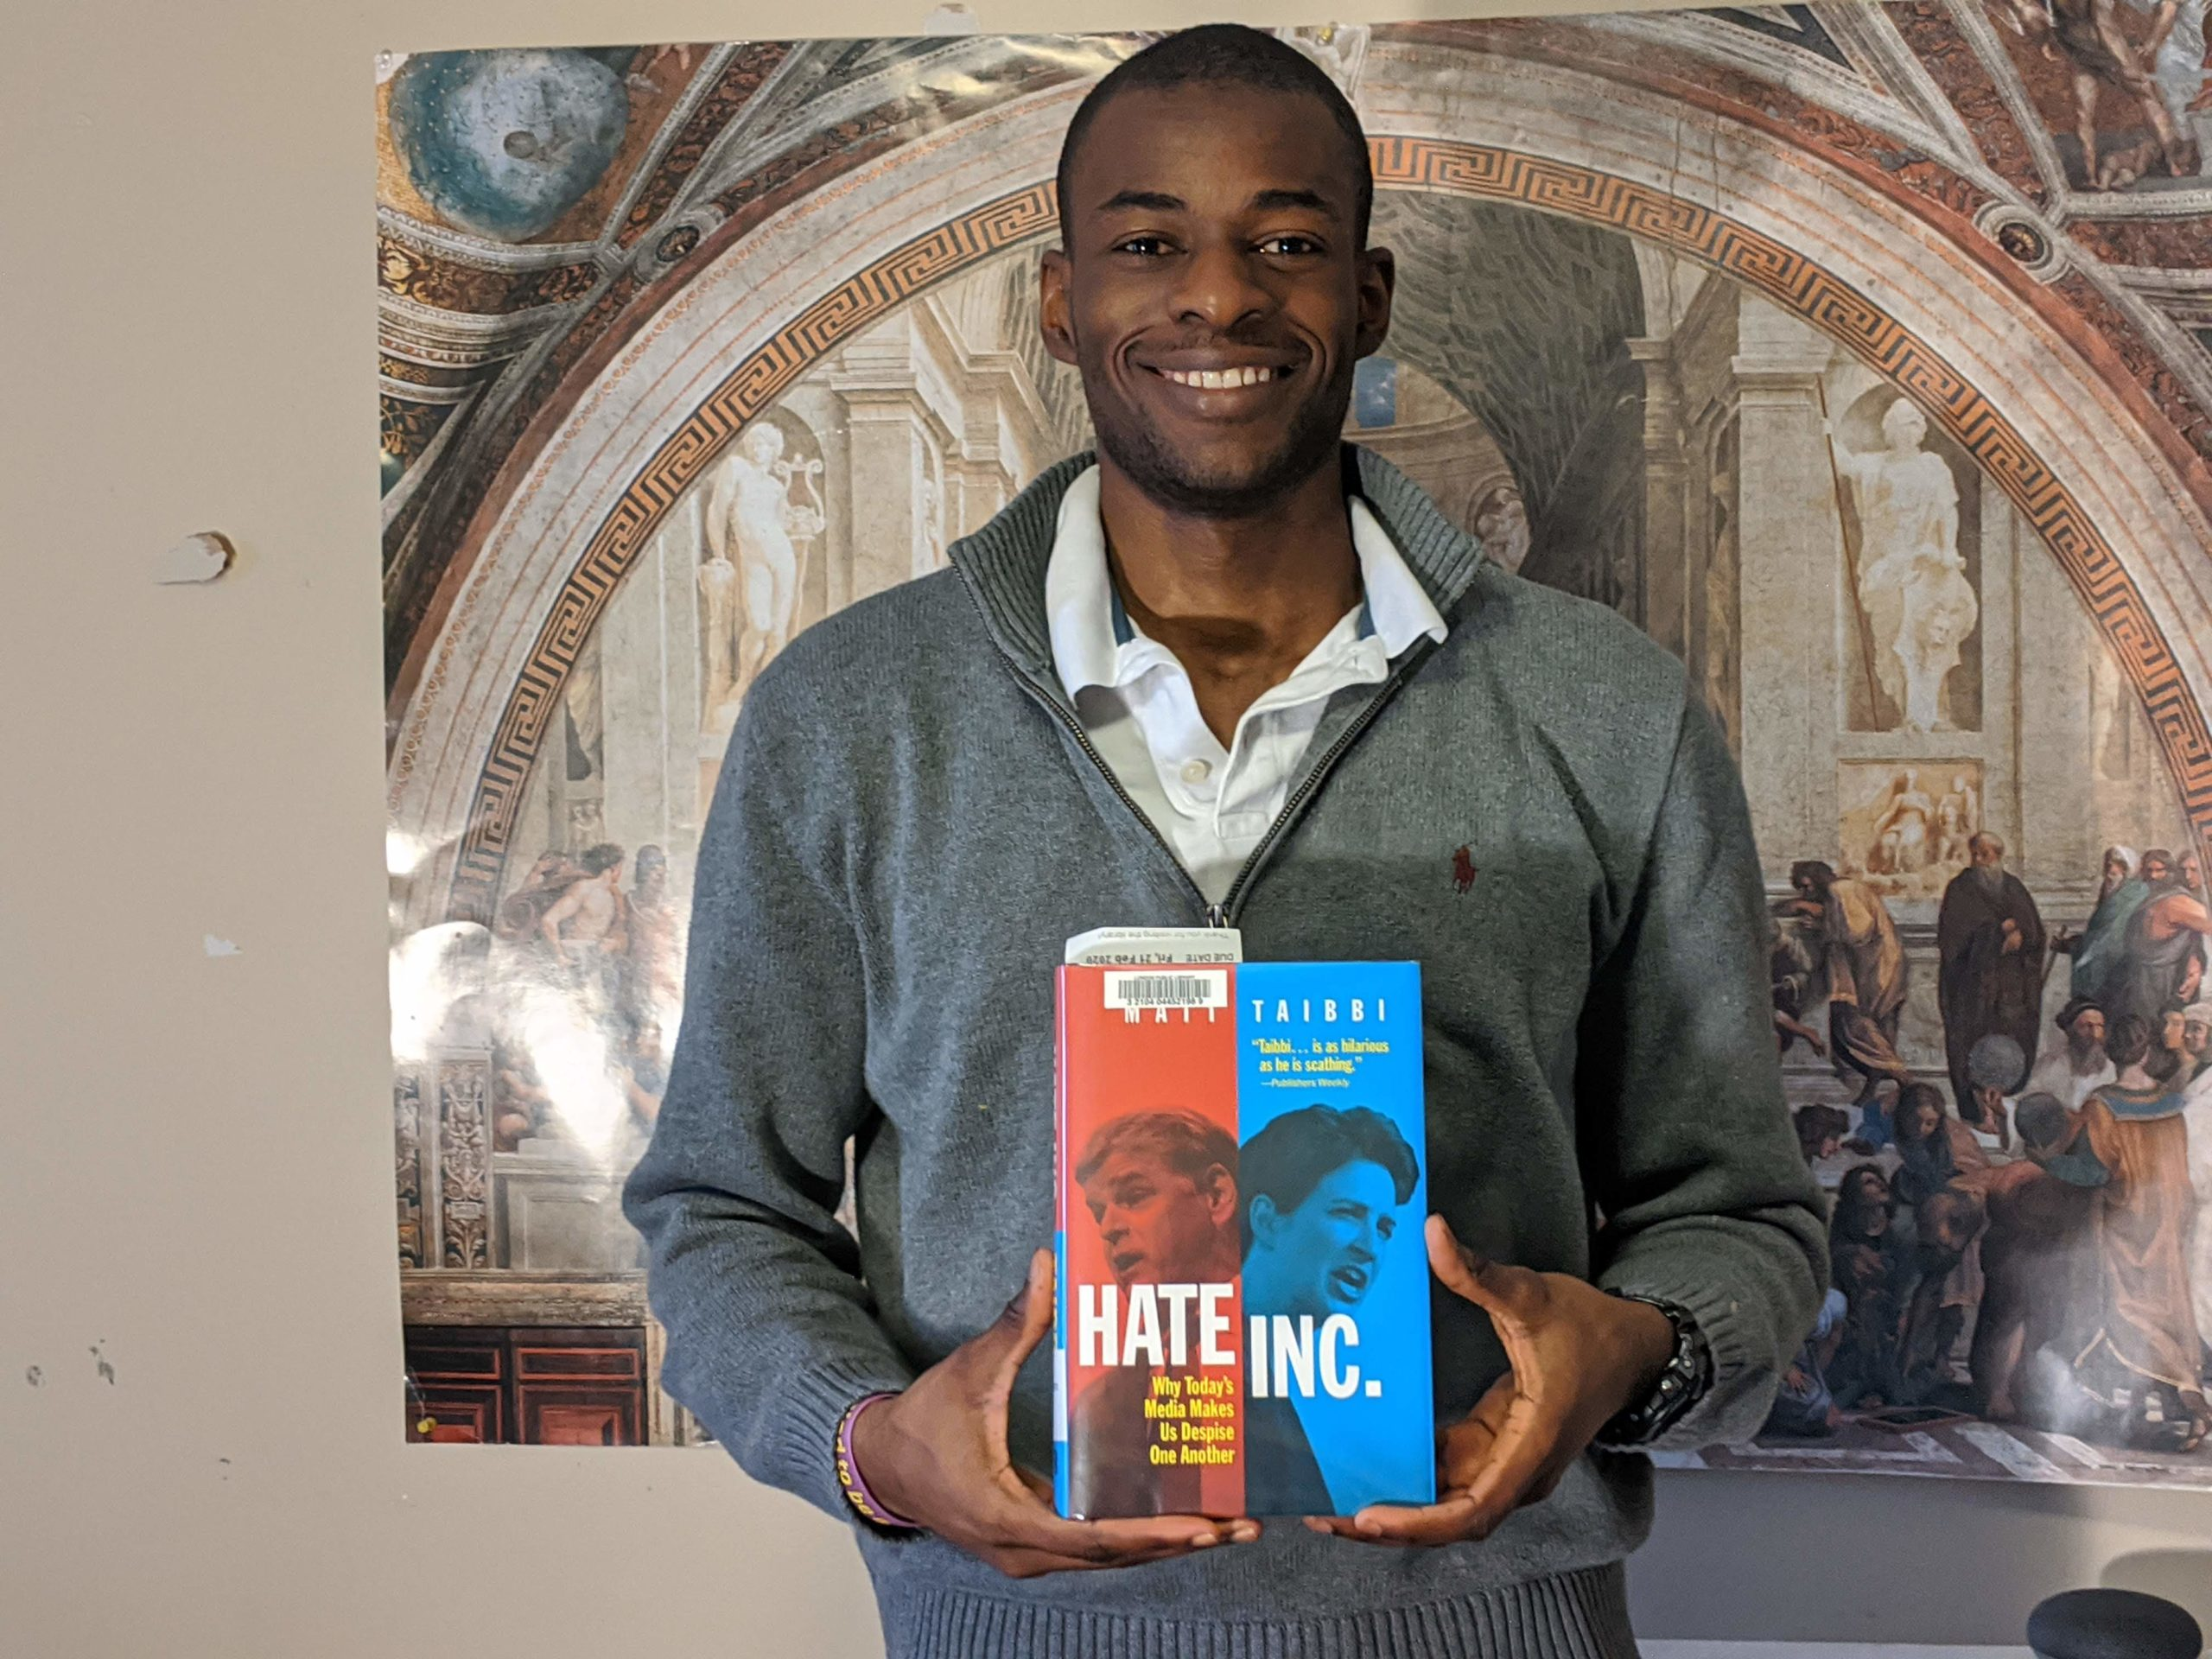 Hate Inc. Book Notes: Political Media's Business Model involves Manipulating your Emotions